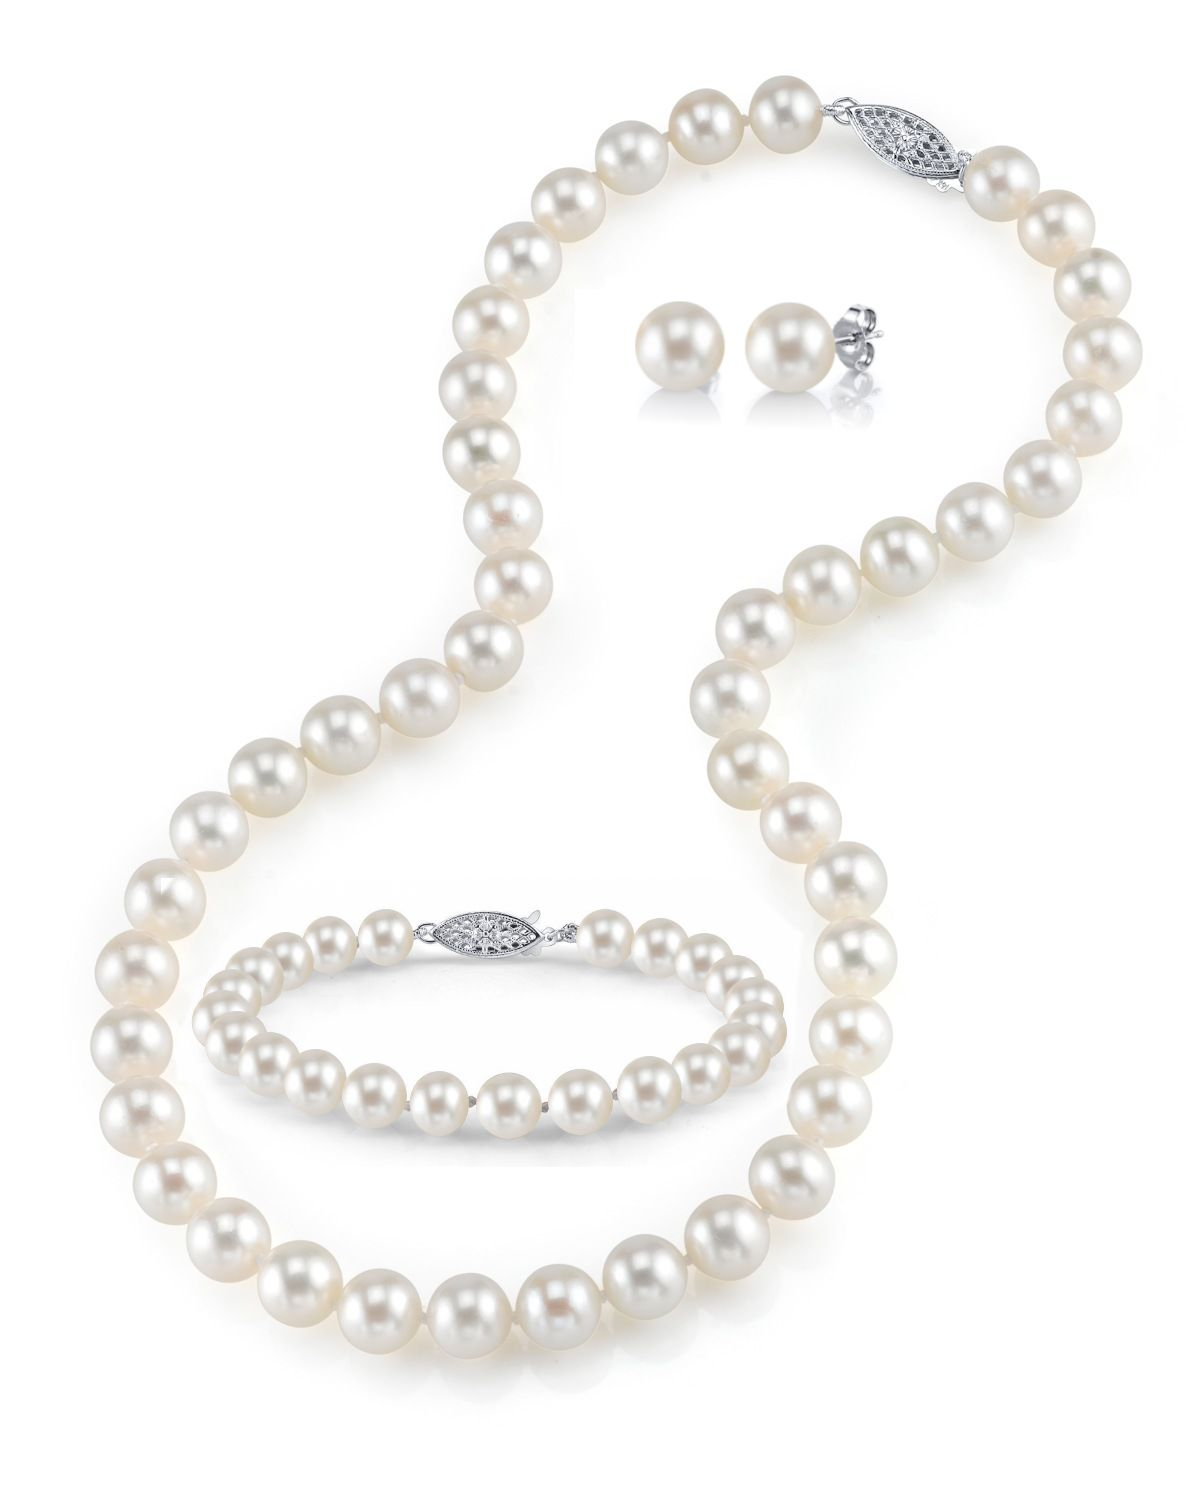 7-8mm Freshwater Pearl Necklace, Bracelet & Earrings